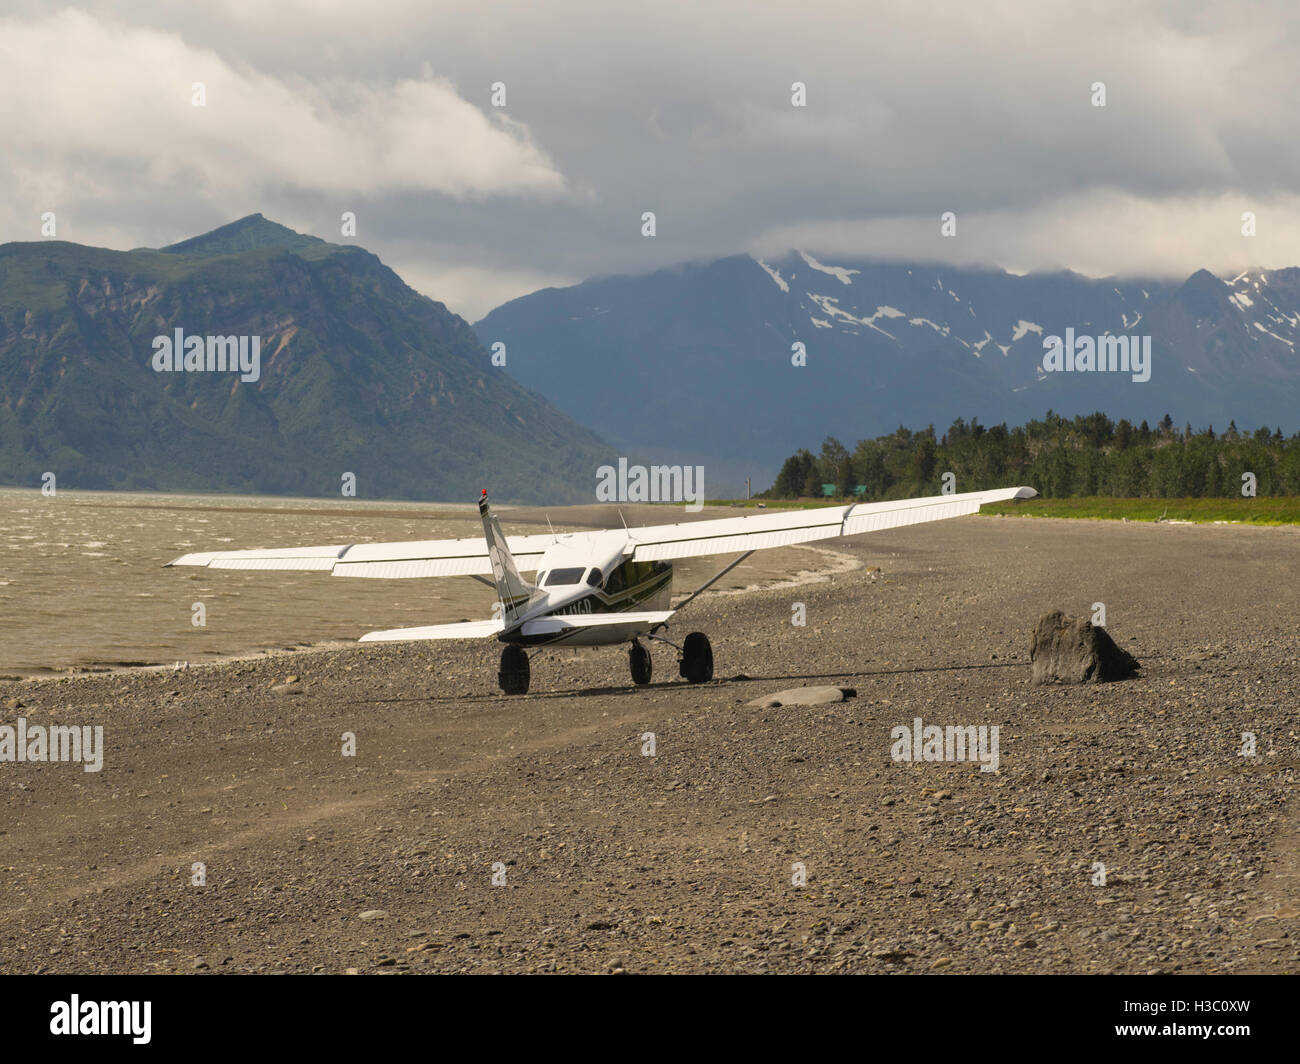 A bush plane takes off from the shore of Chinitna Bay, Lake Clark National Park, Alaska. - Stock Image